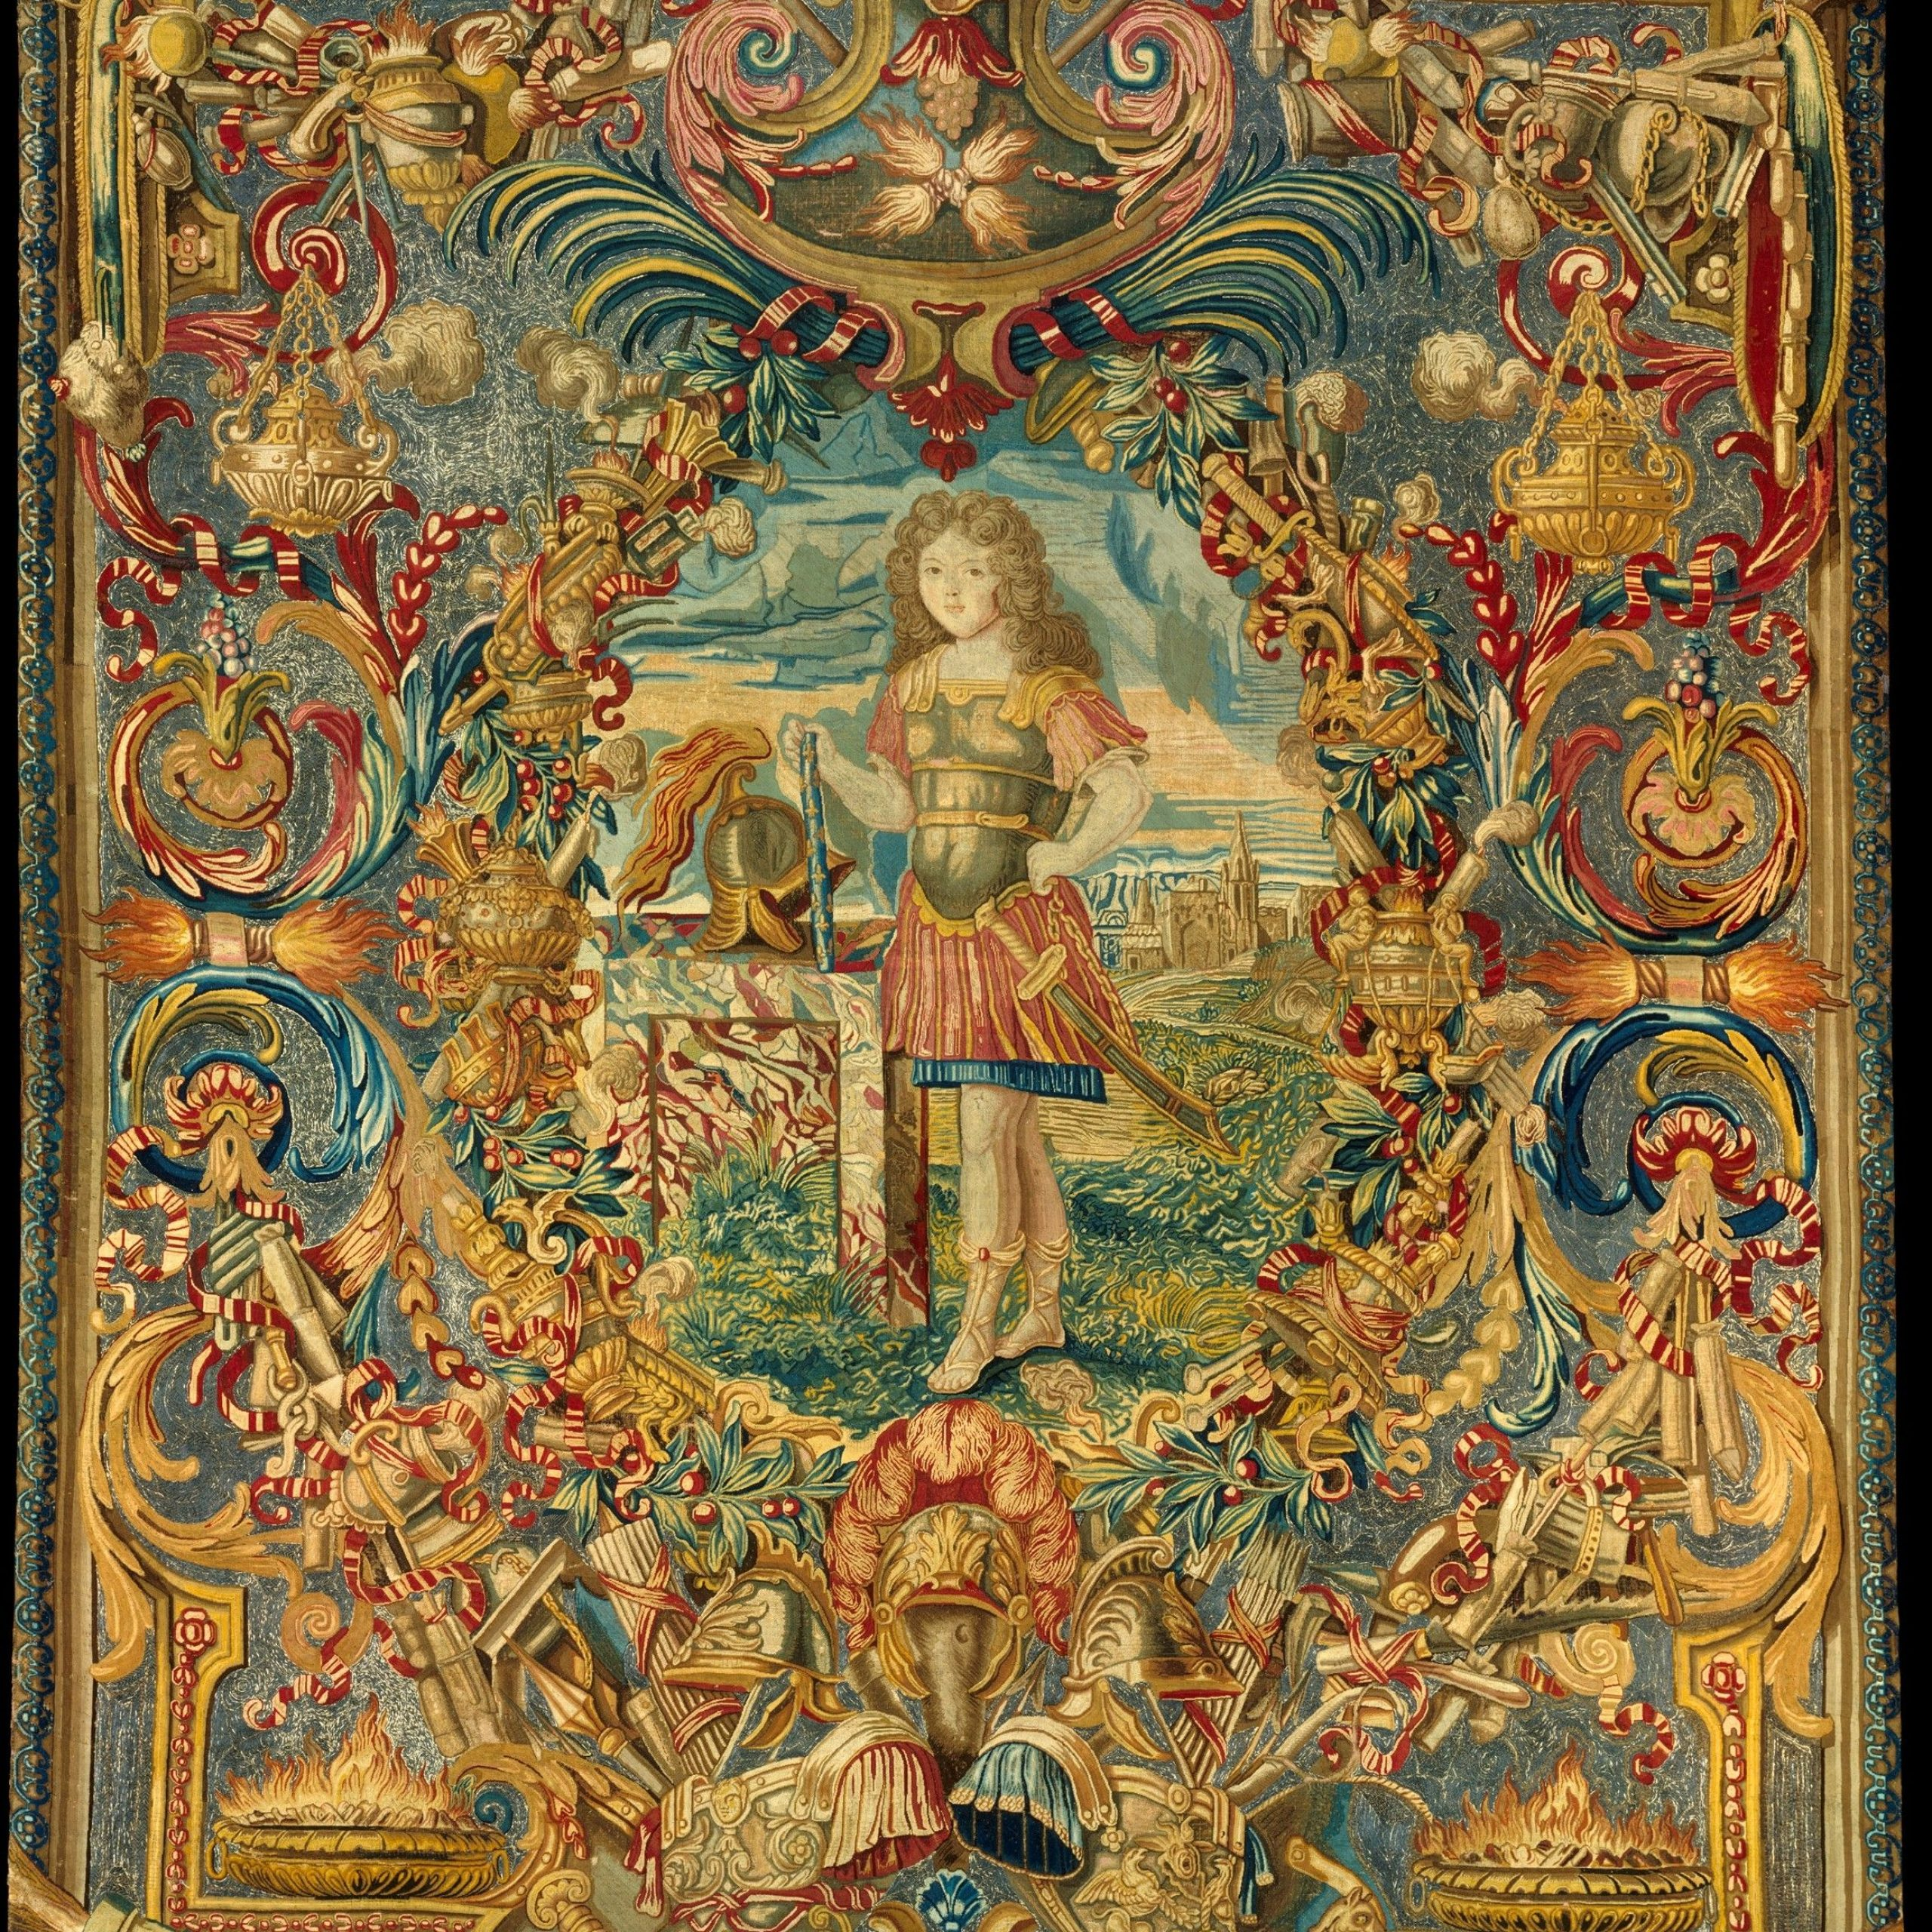 100+ Tapestry Ideas | Tapestry, Art, Medieval Tapestry Inside Newest Blended Fabric Verdure Au Chateau Ii European Tapestries (View 11 of 20)